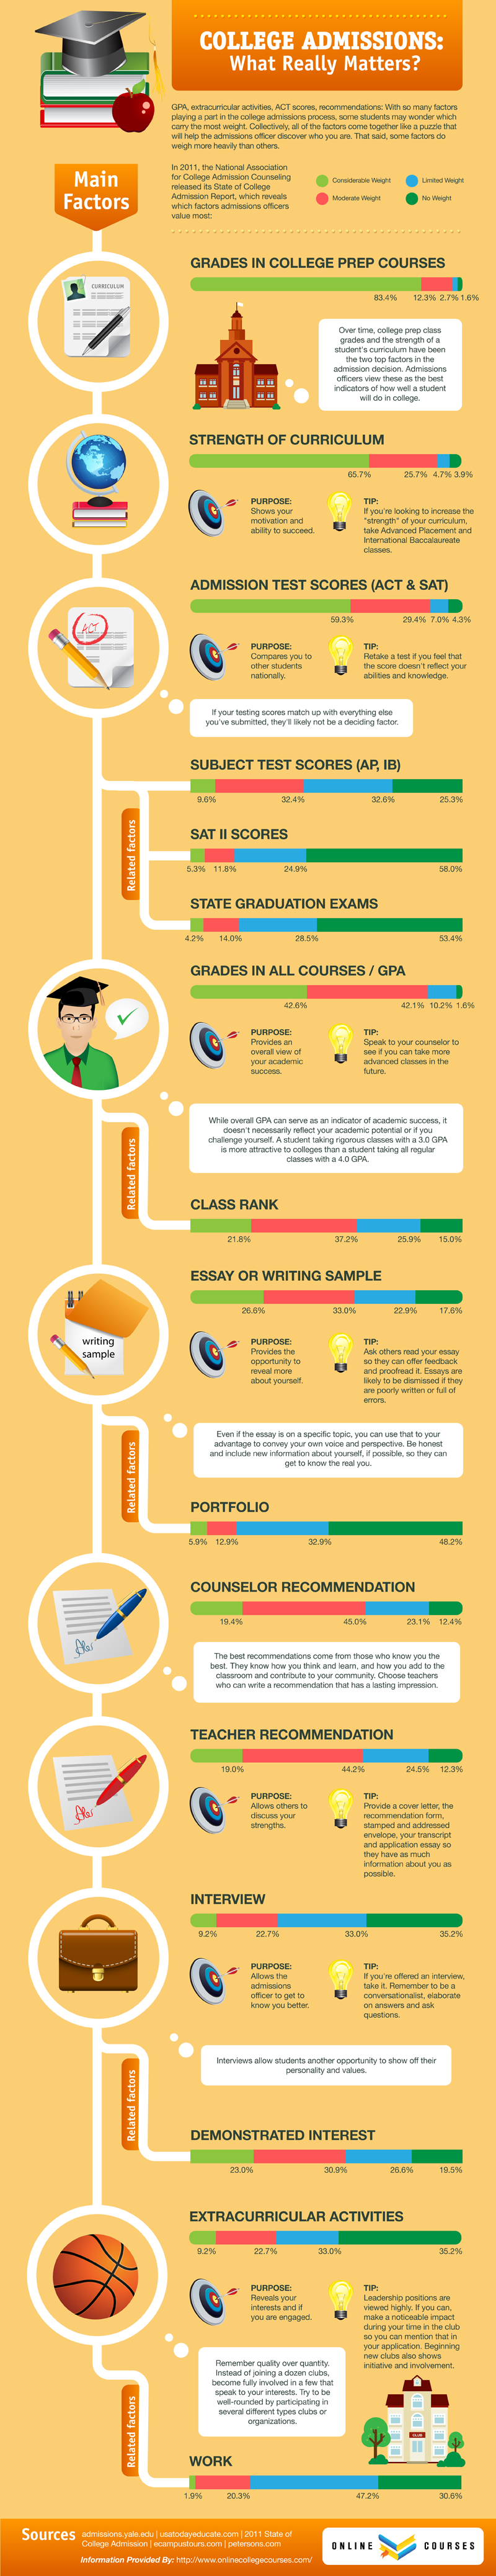 Important Facts About College Admission